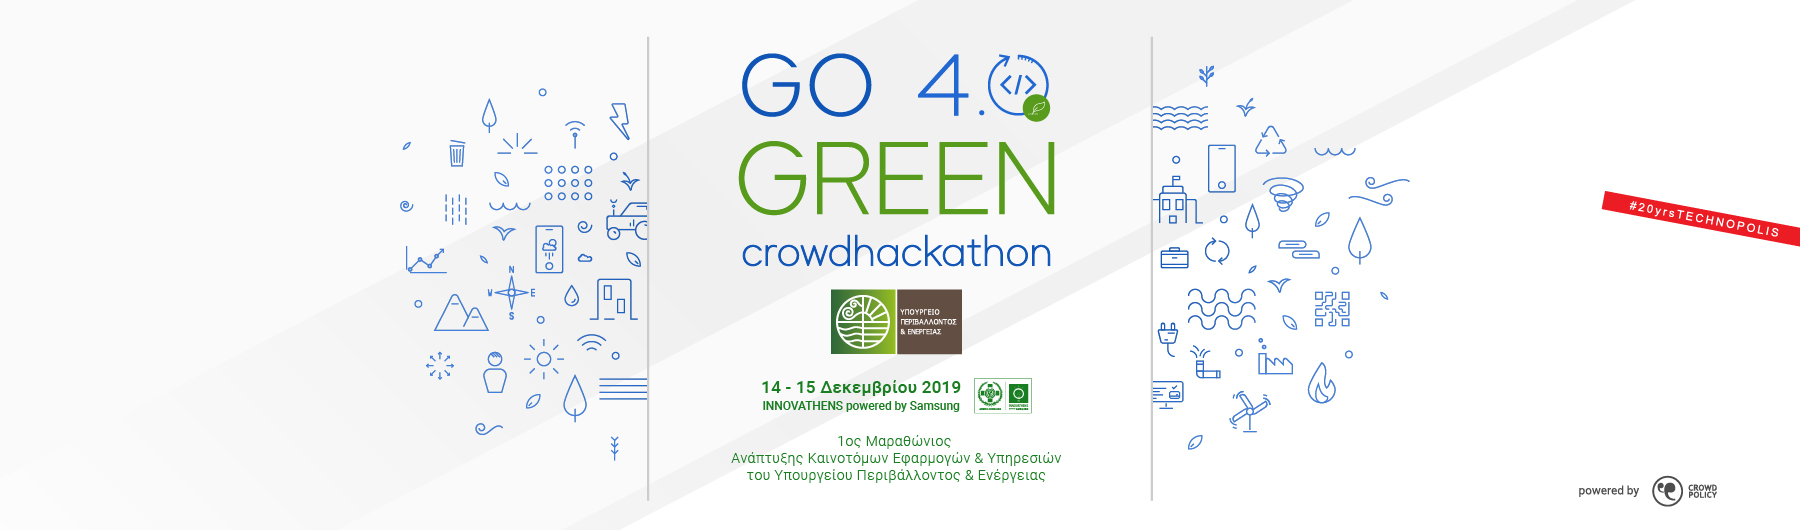 GO 4.0 Green crowdhackathon